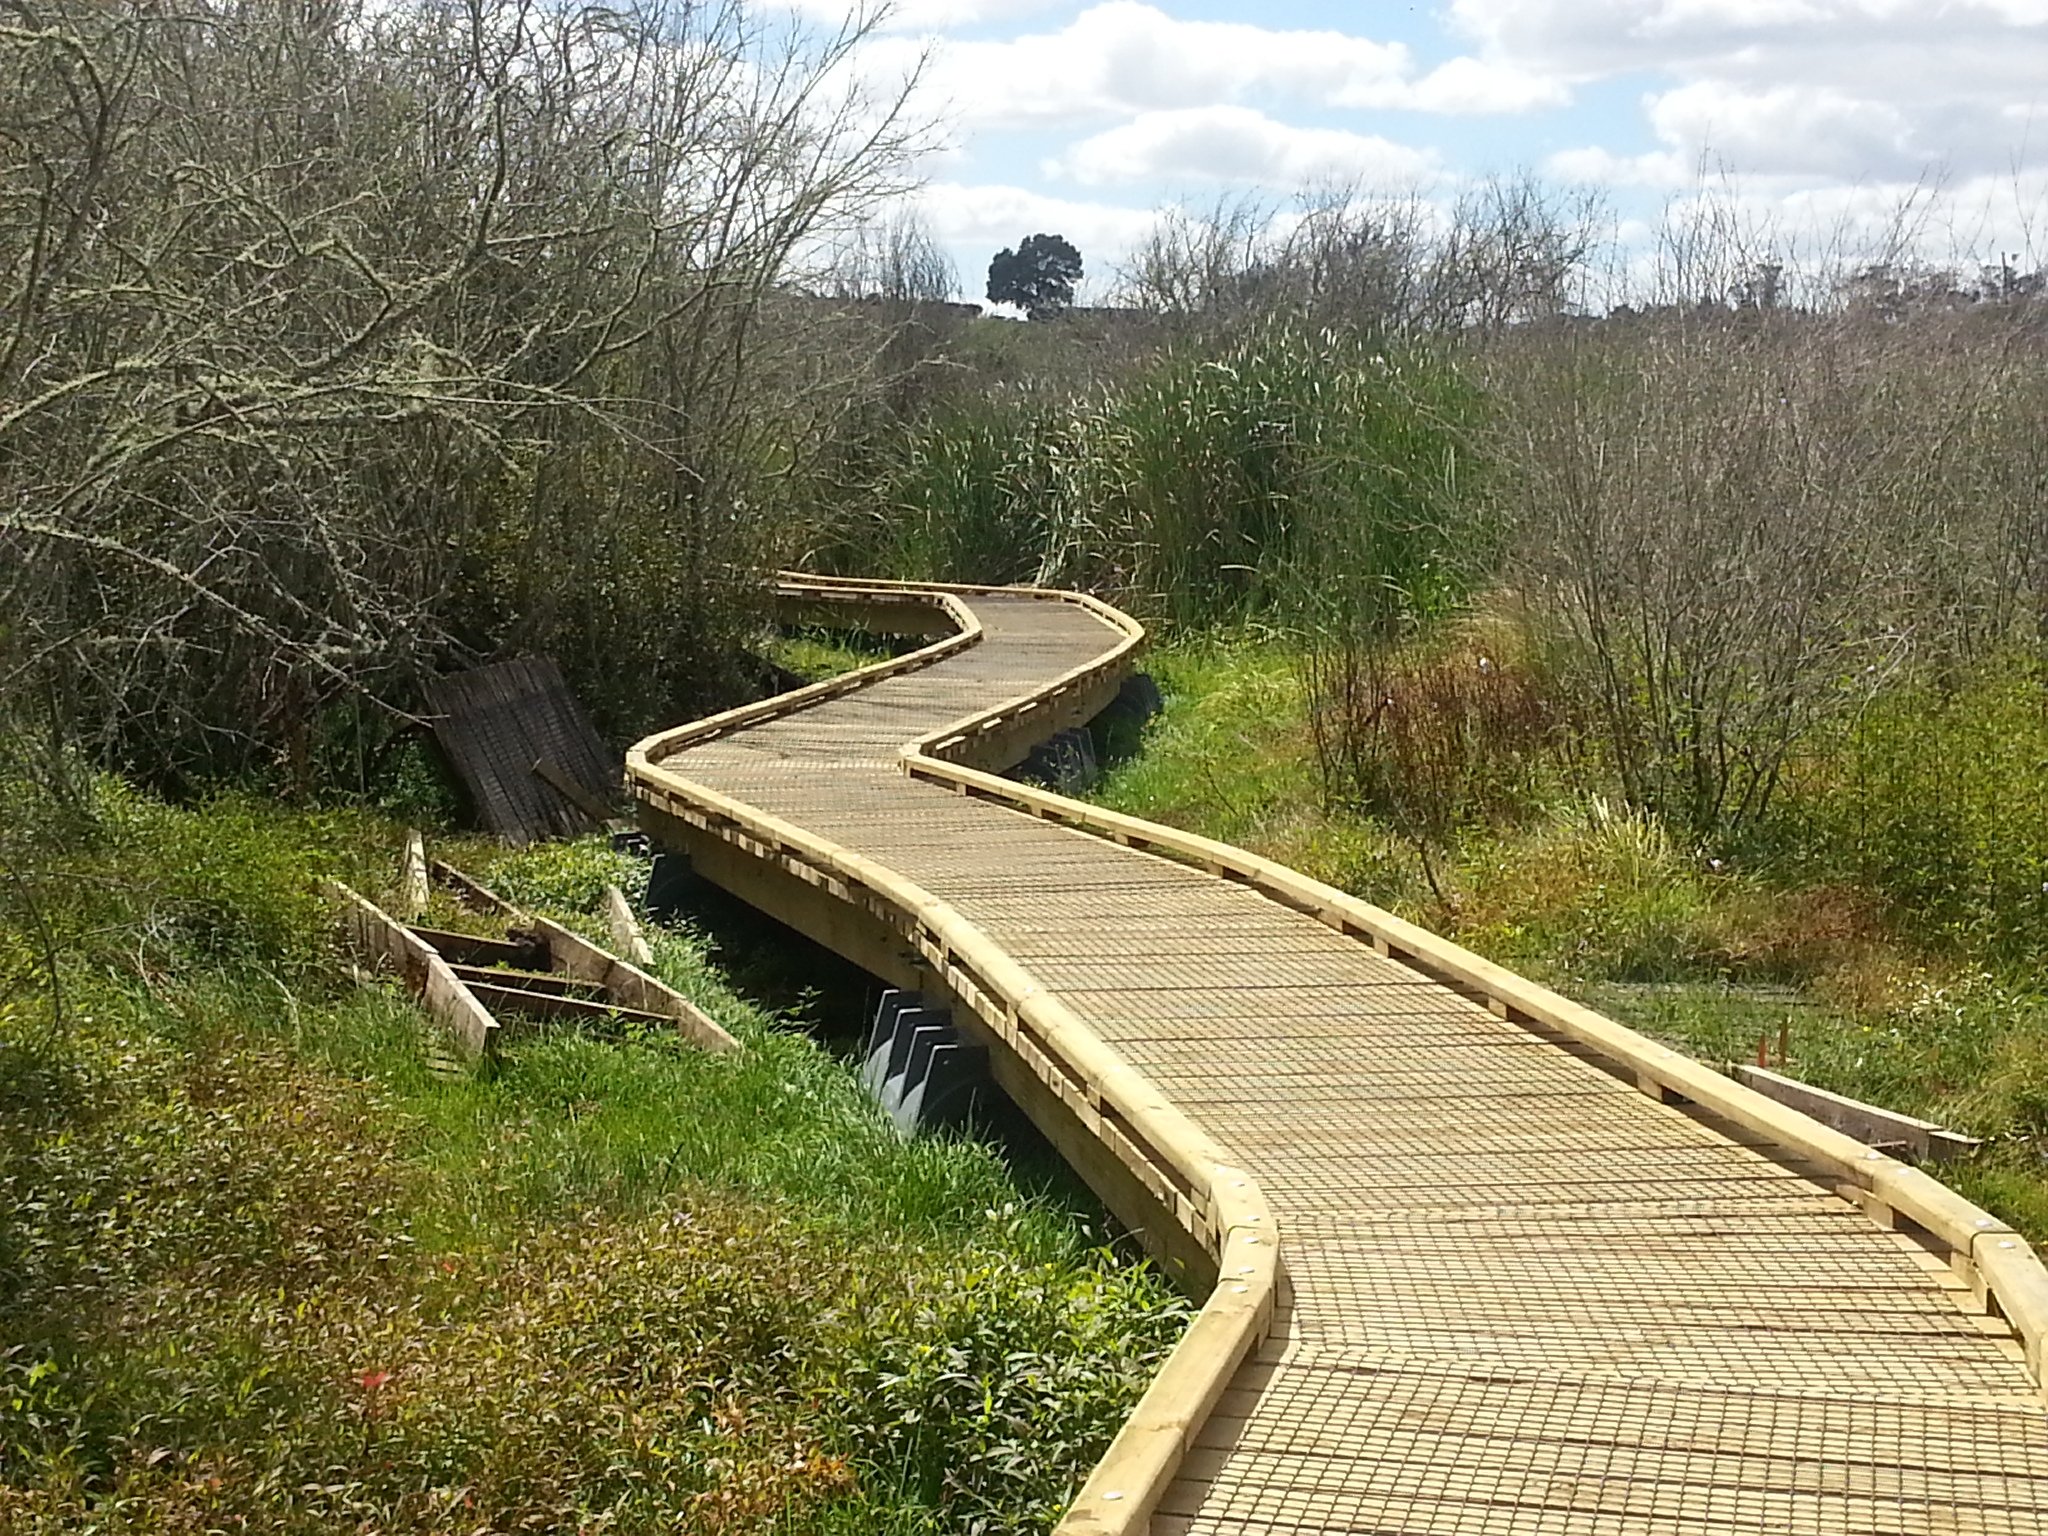 Pontoonz boat pods supporting a walkway through sensitive wetland area.